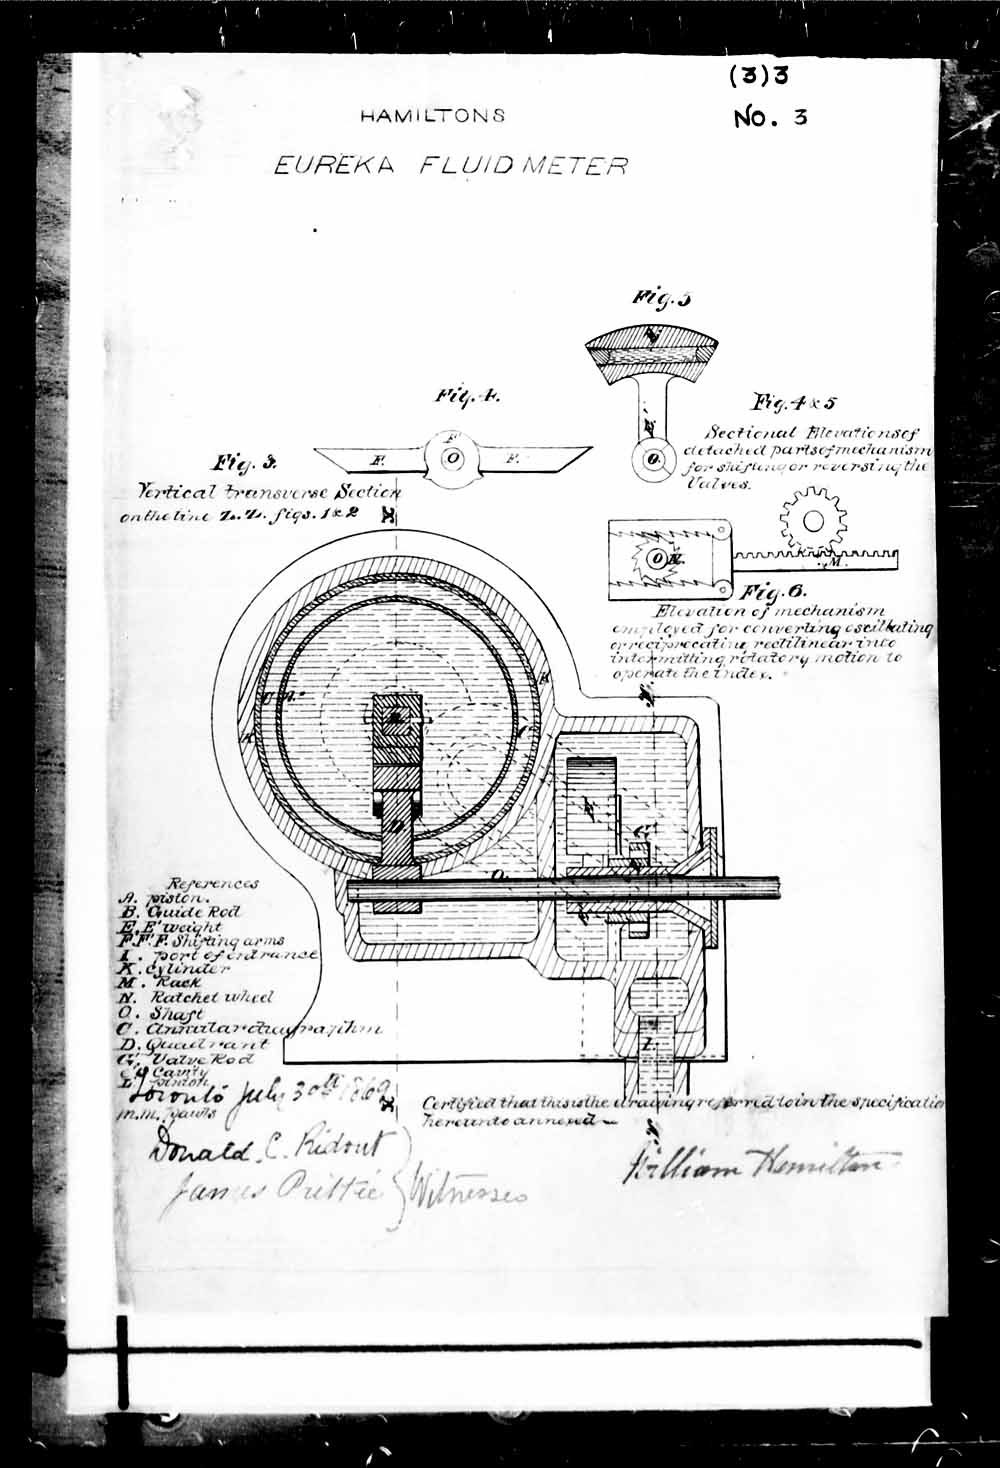 A MACHINE FOR MEASURING LIQUIDS, p. 22